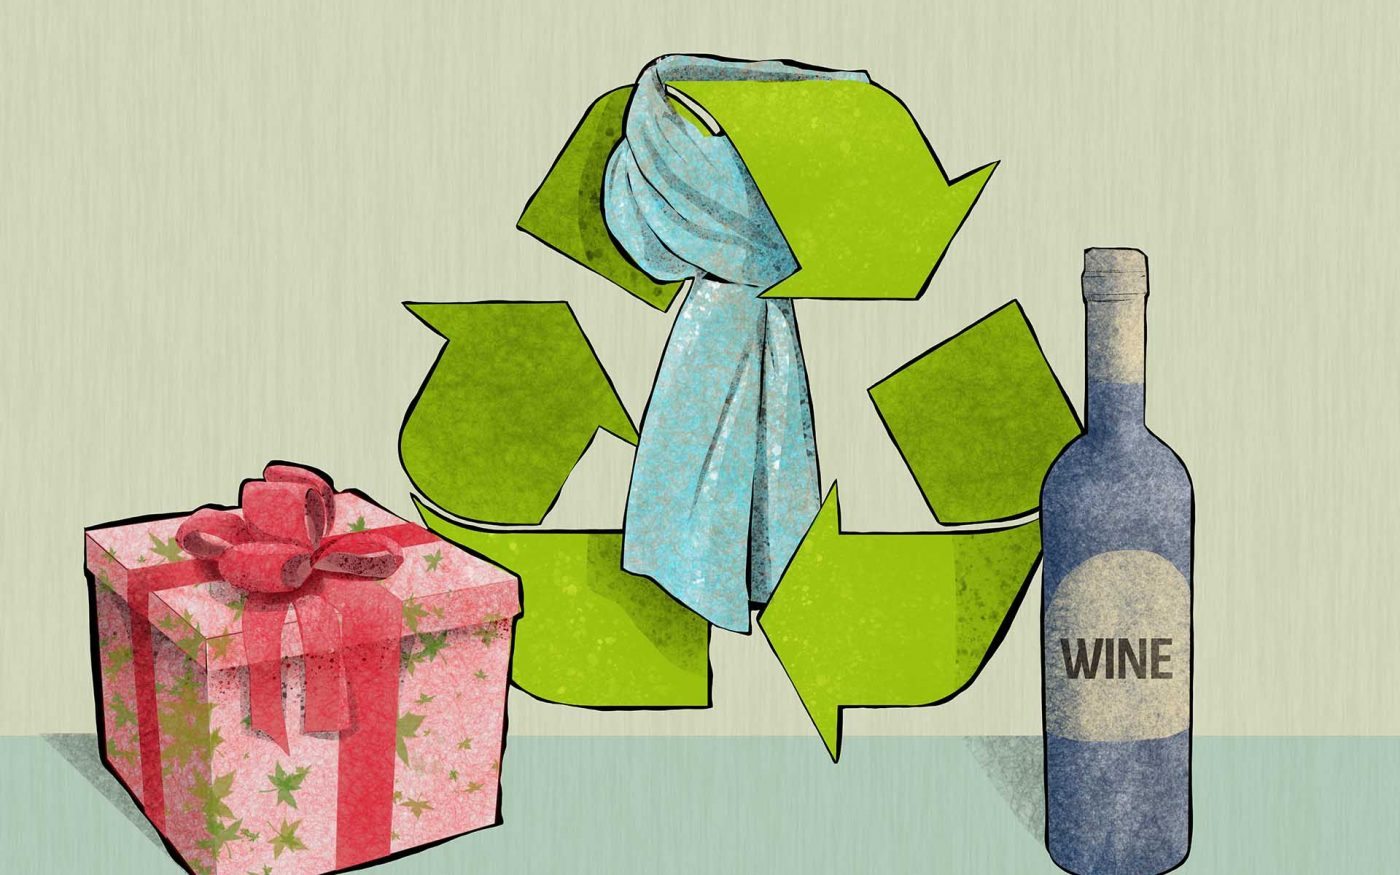 Illustration of gifts that can be recycled and reused